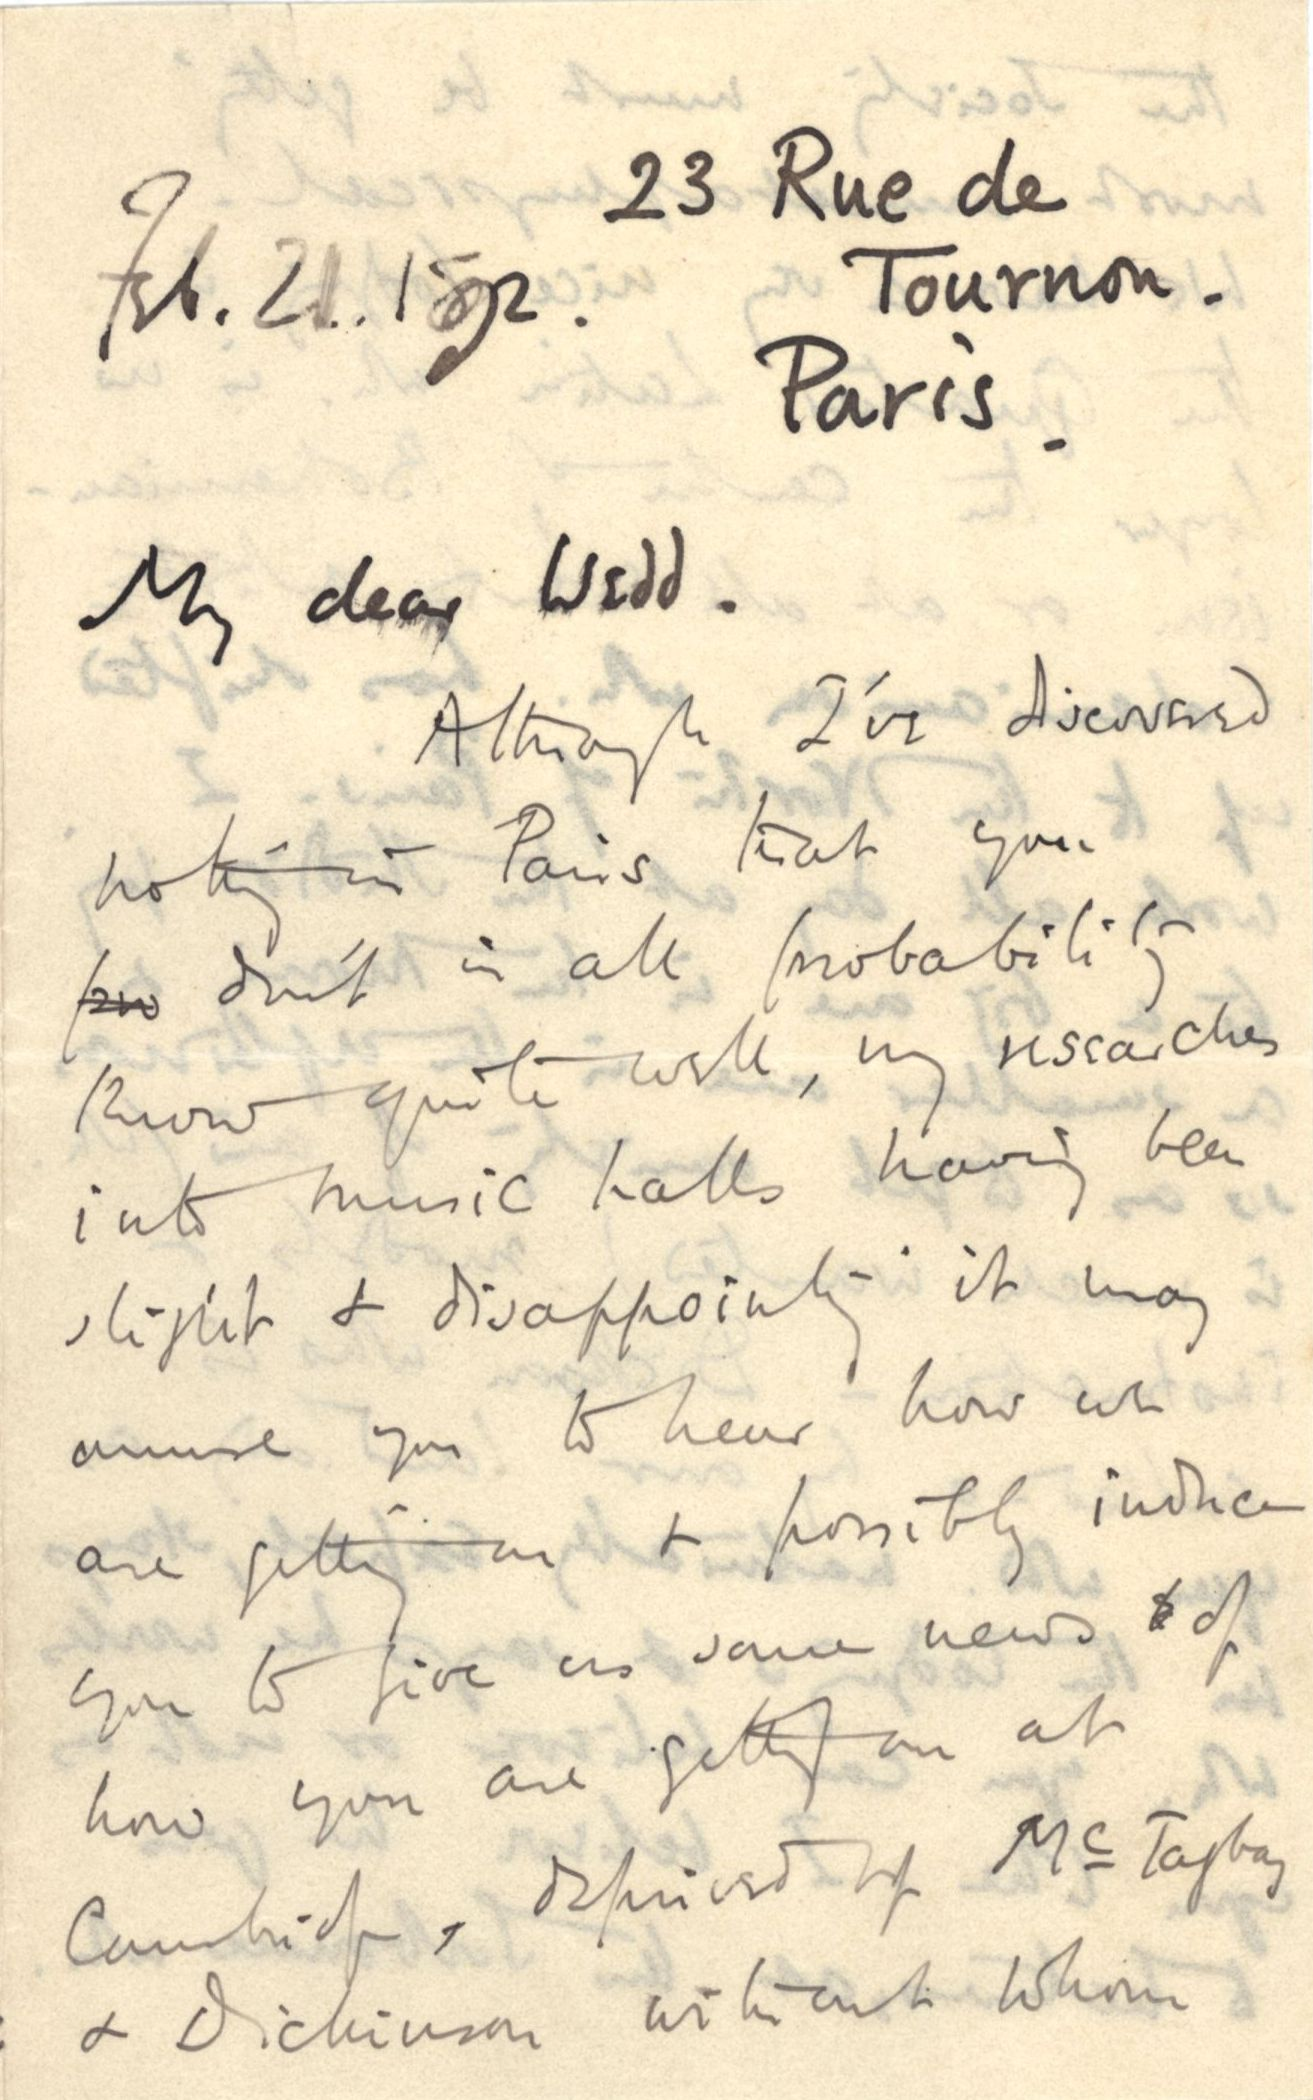 First page of a letter from Roger Fry to Nathaniel Wedd, referring to Apostles becoming 'unmetaphysical' without McTaggart and Dickinson. [NW/2/27, 21 February 1892]